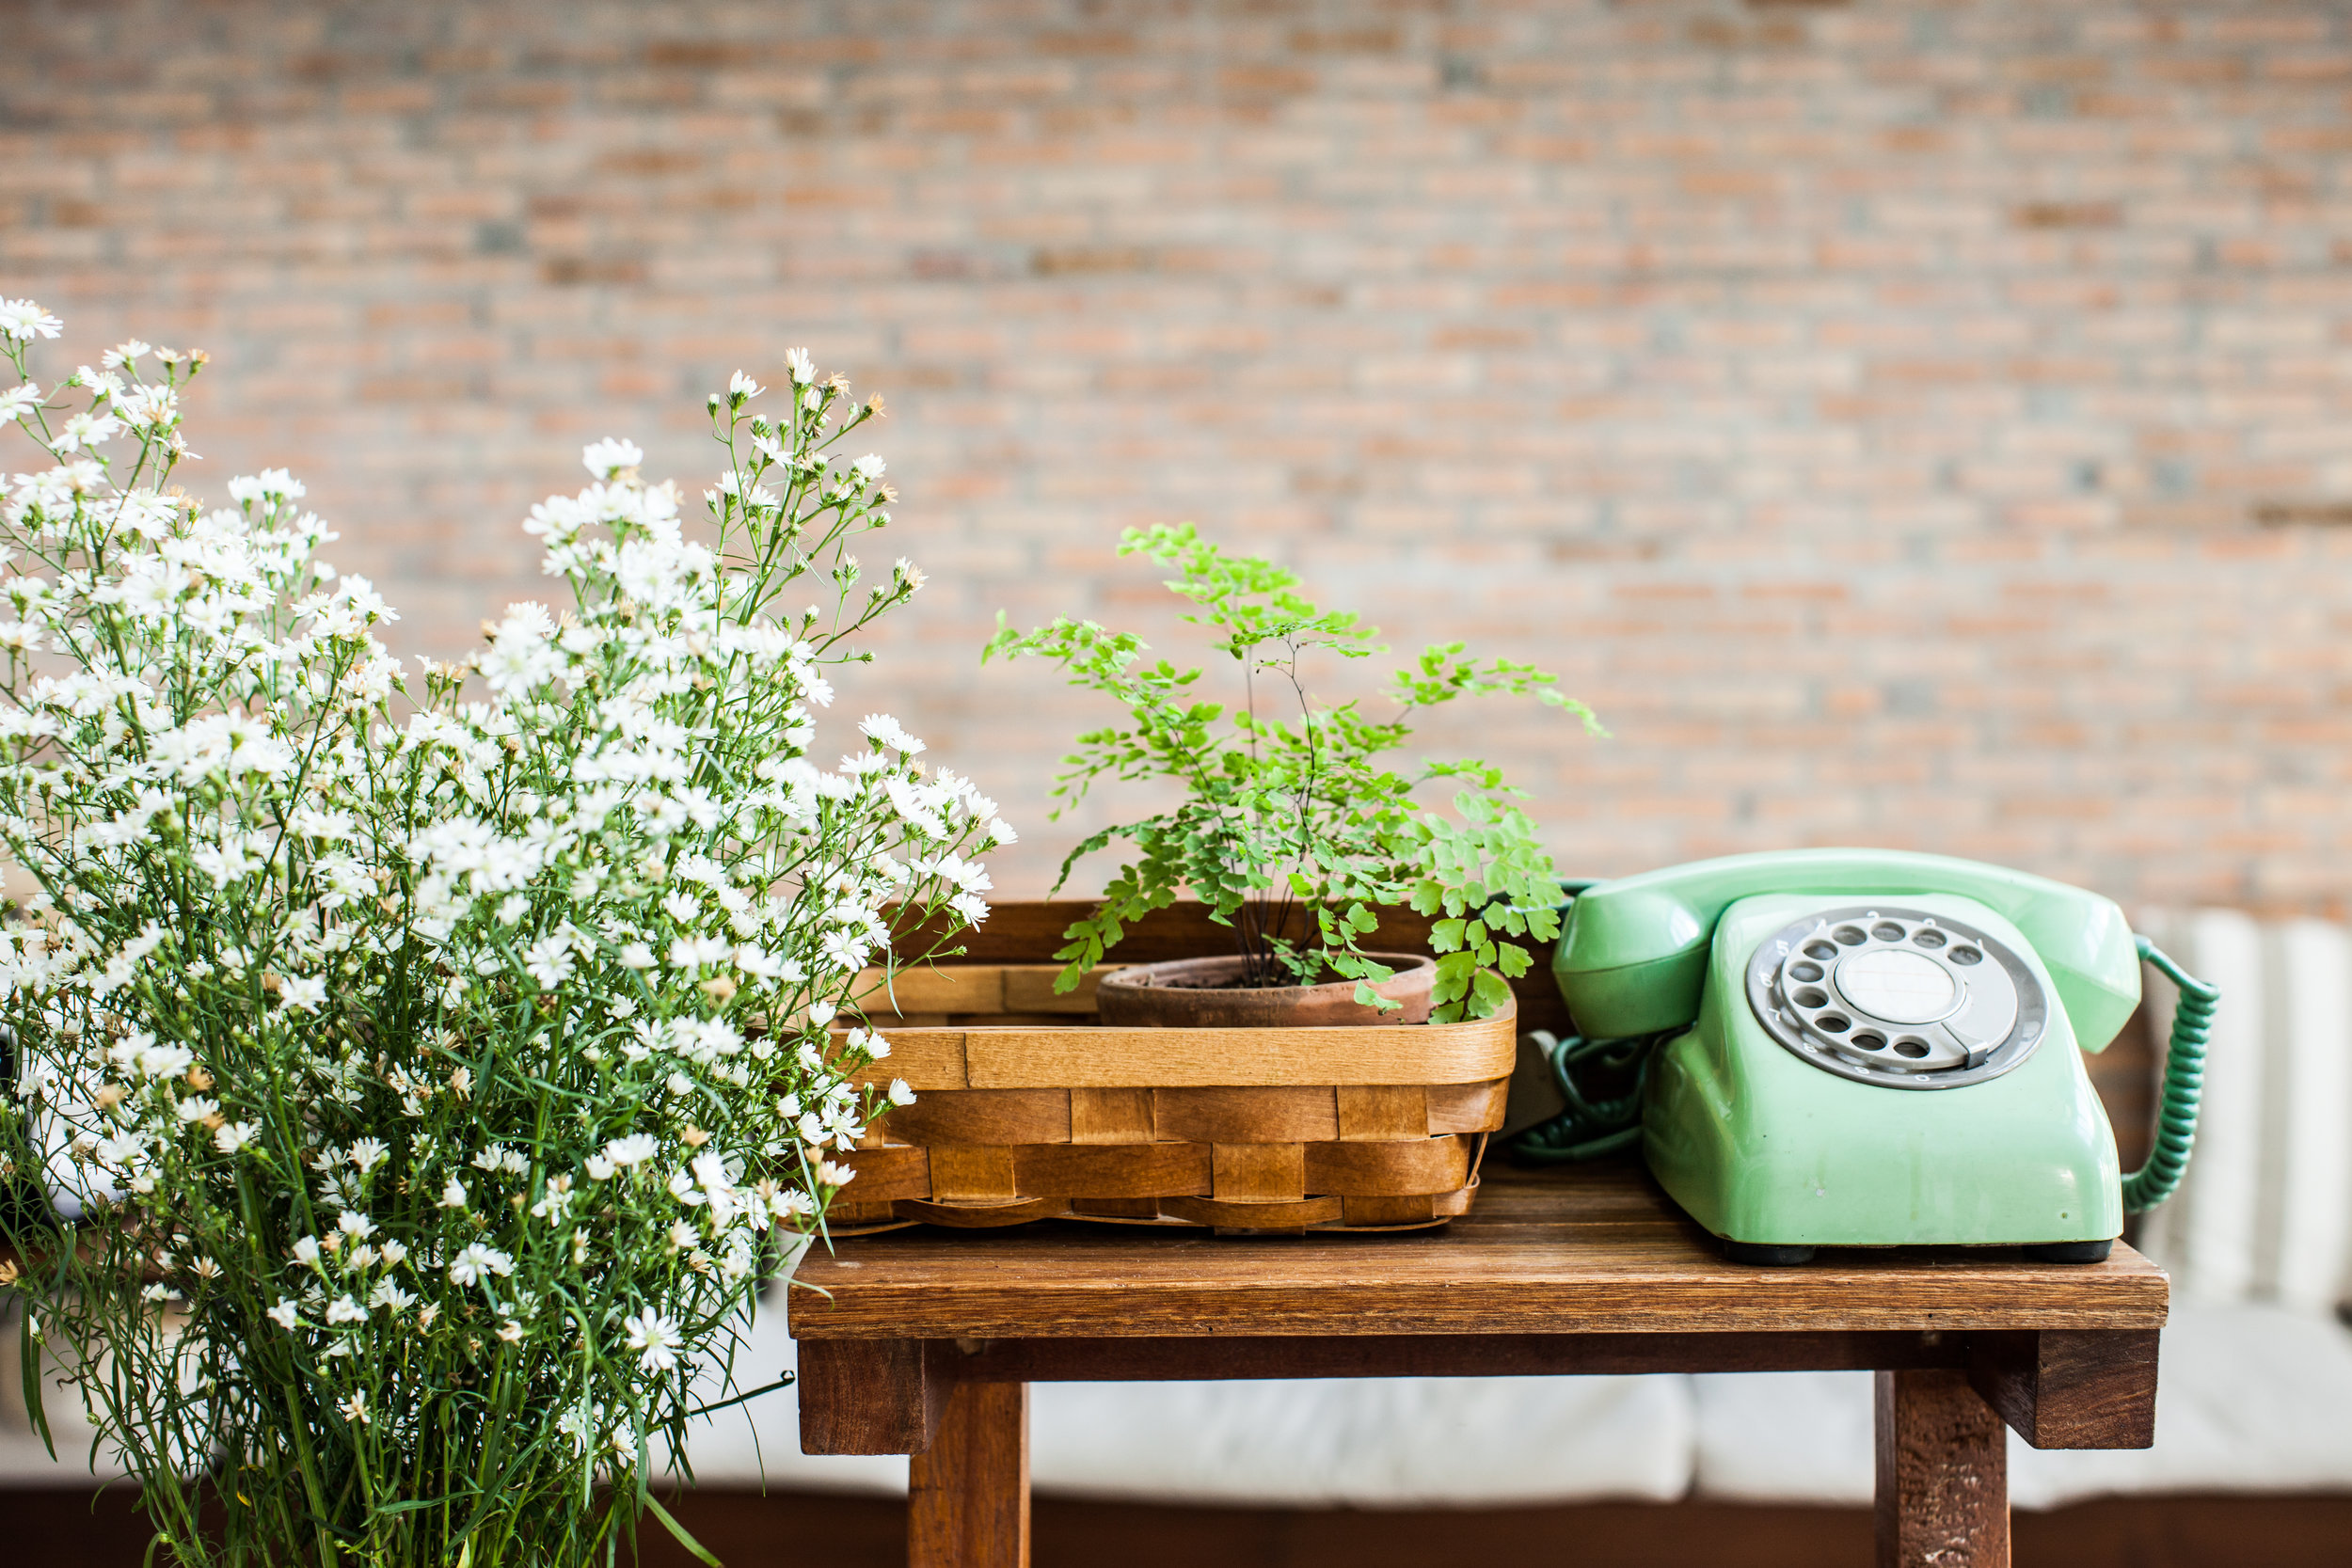 stock-photo-retro-mint-green-rotary-telephone-on-wood-table-225618496.jpg